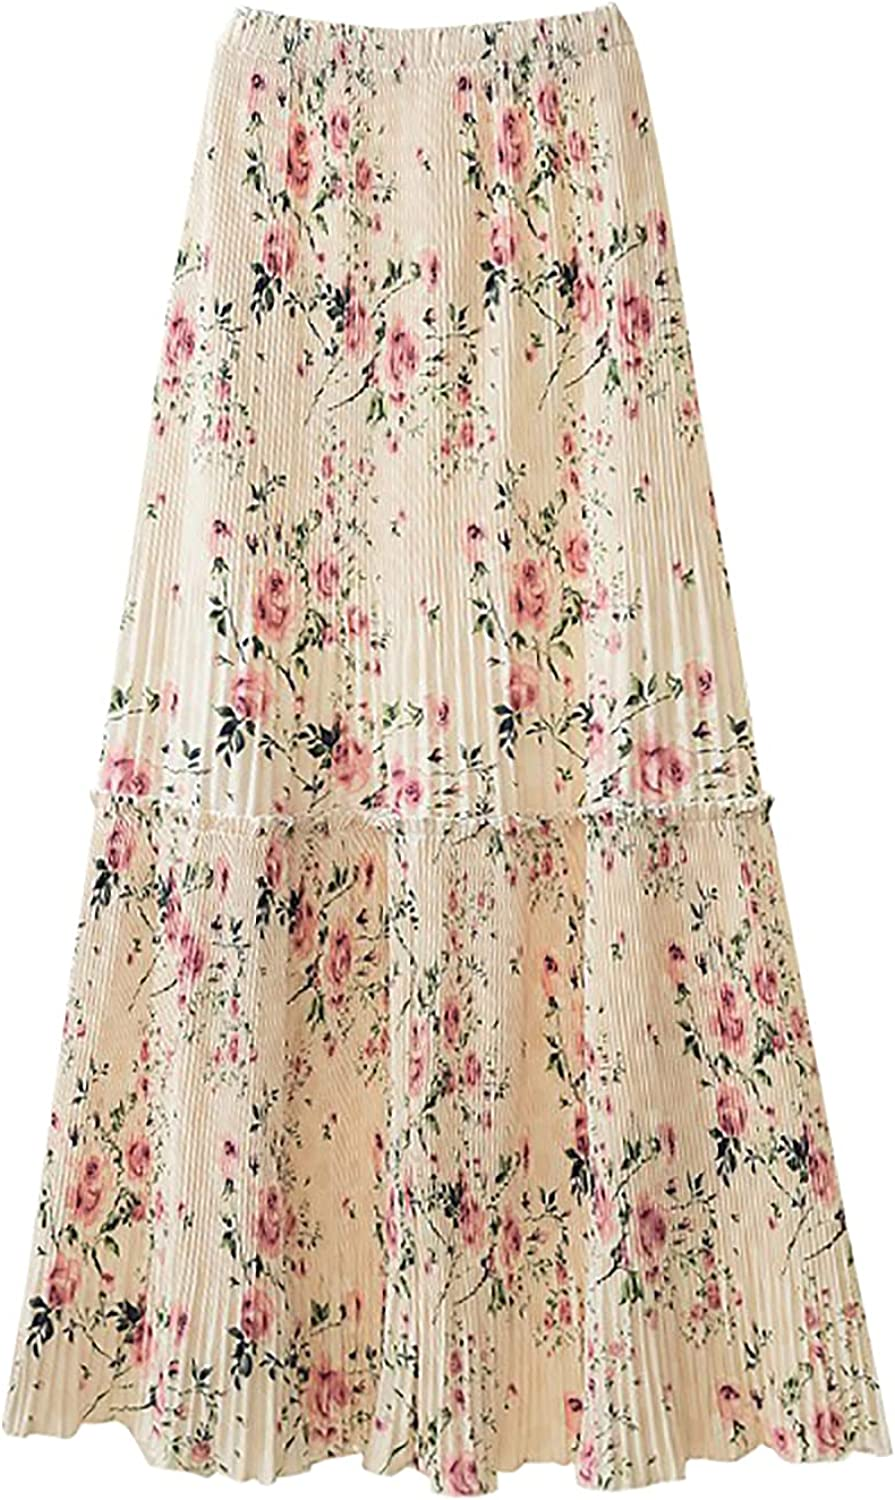 Maxi Skirt for Women Summer Flared Pleated Elastic Waist Ruched